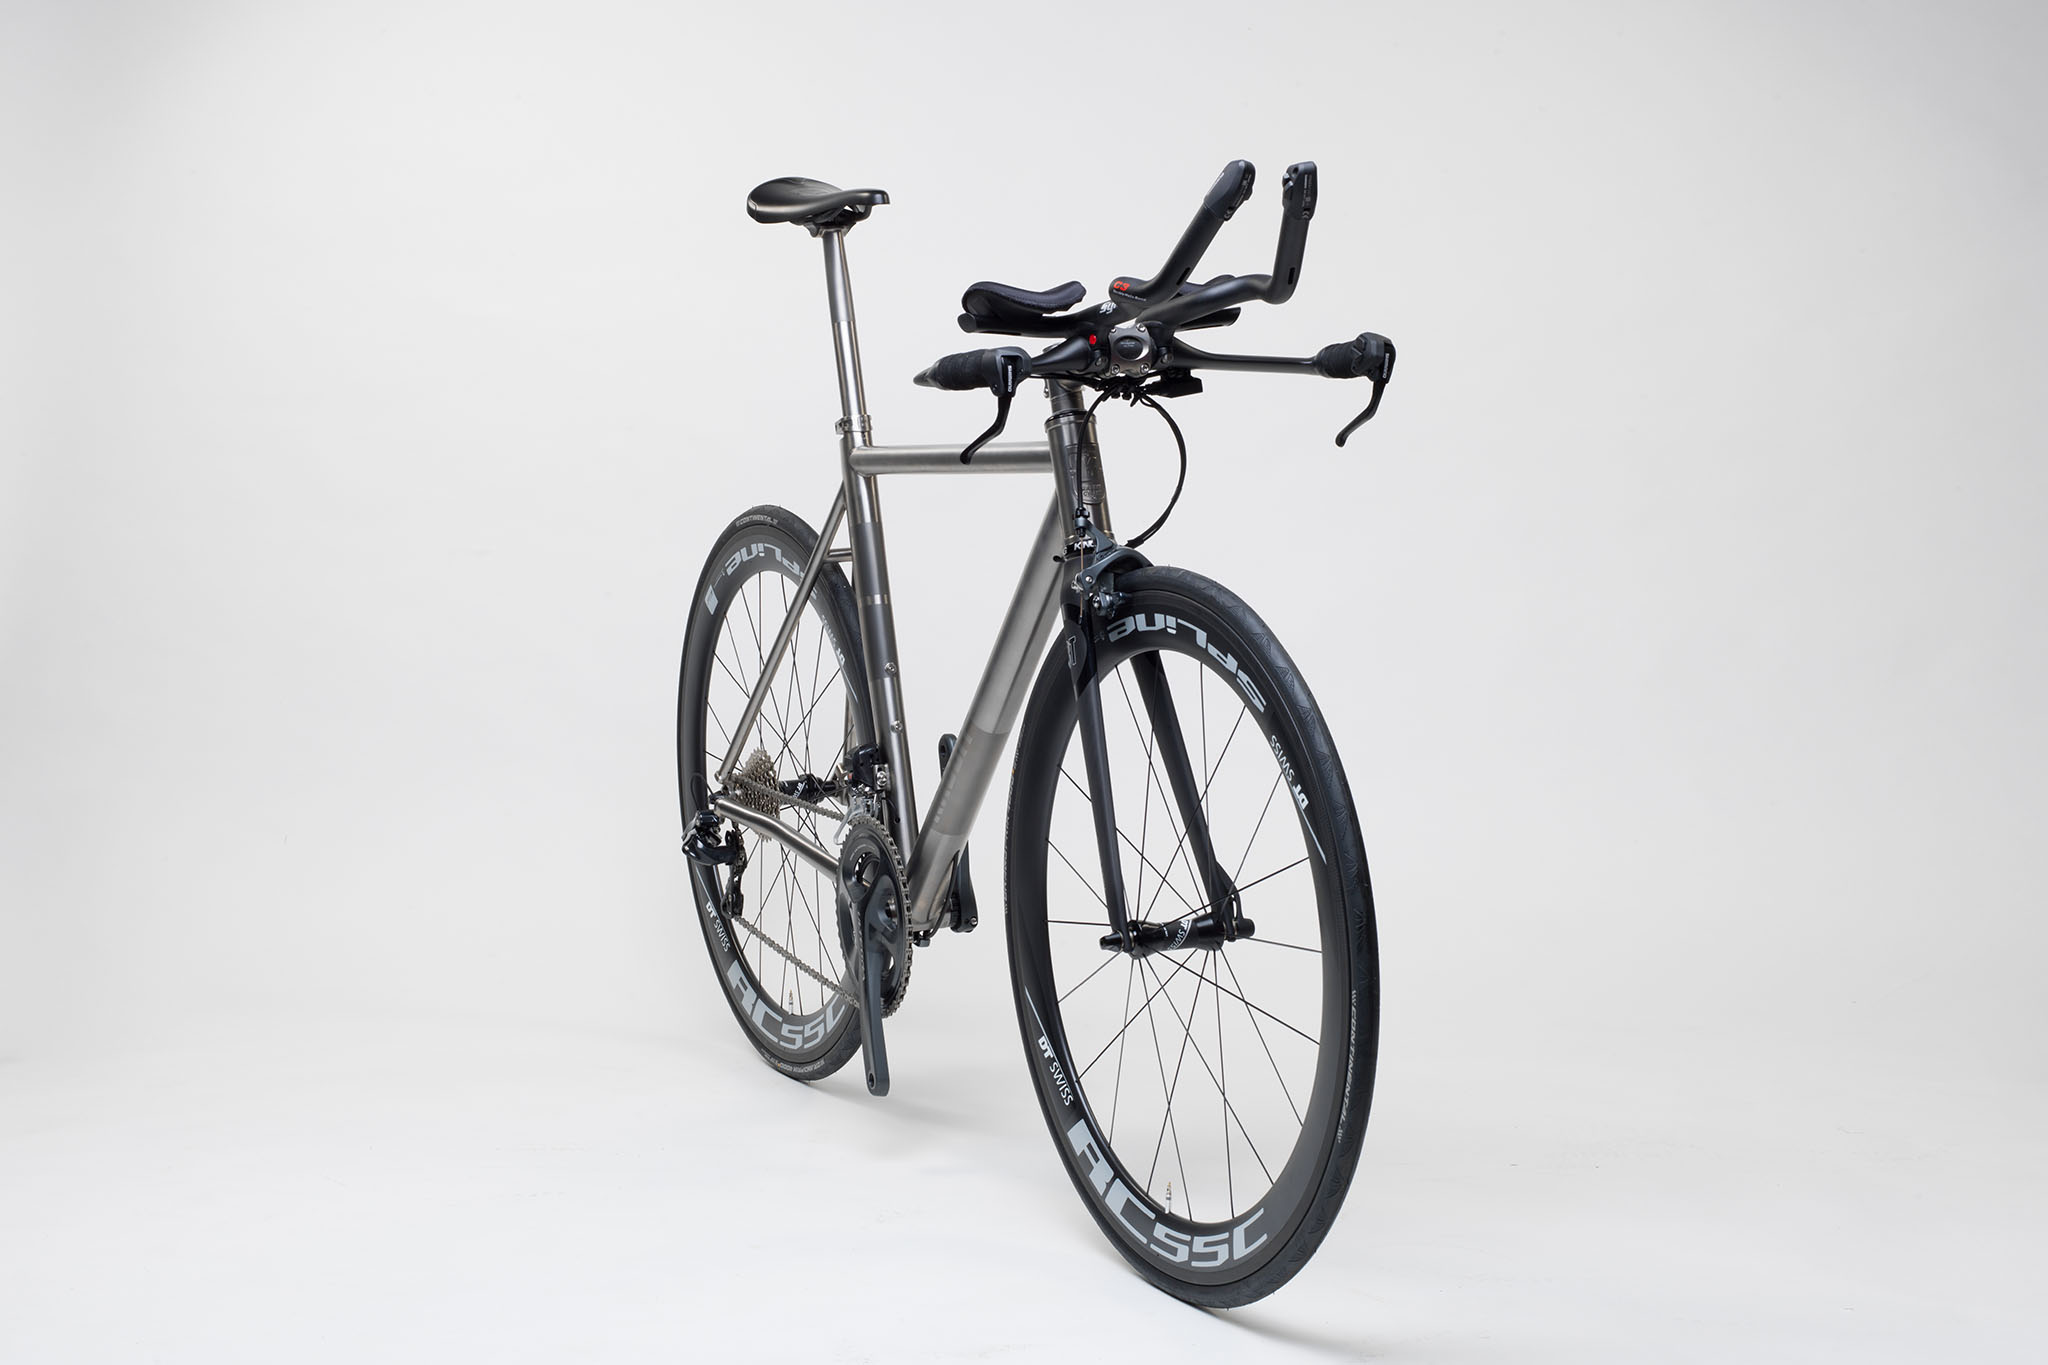 titan_triathlon_bike_best_on_earth_11_from_rabbit_titan_cycles_bavaria